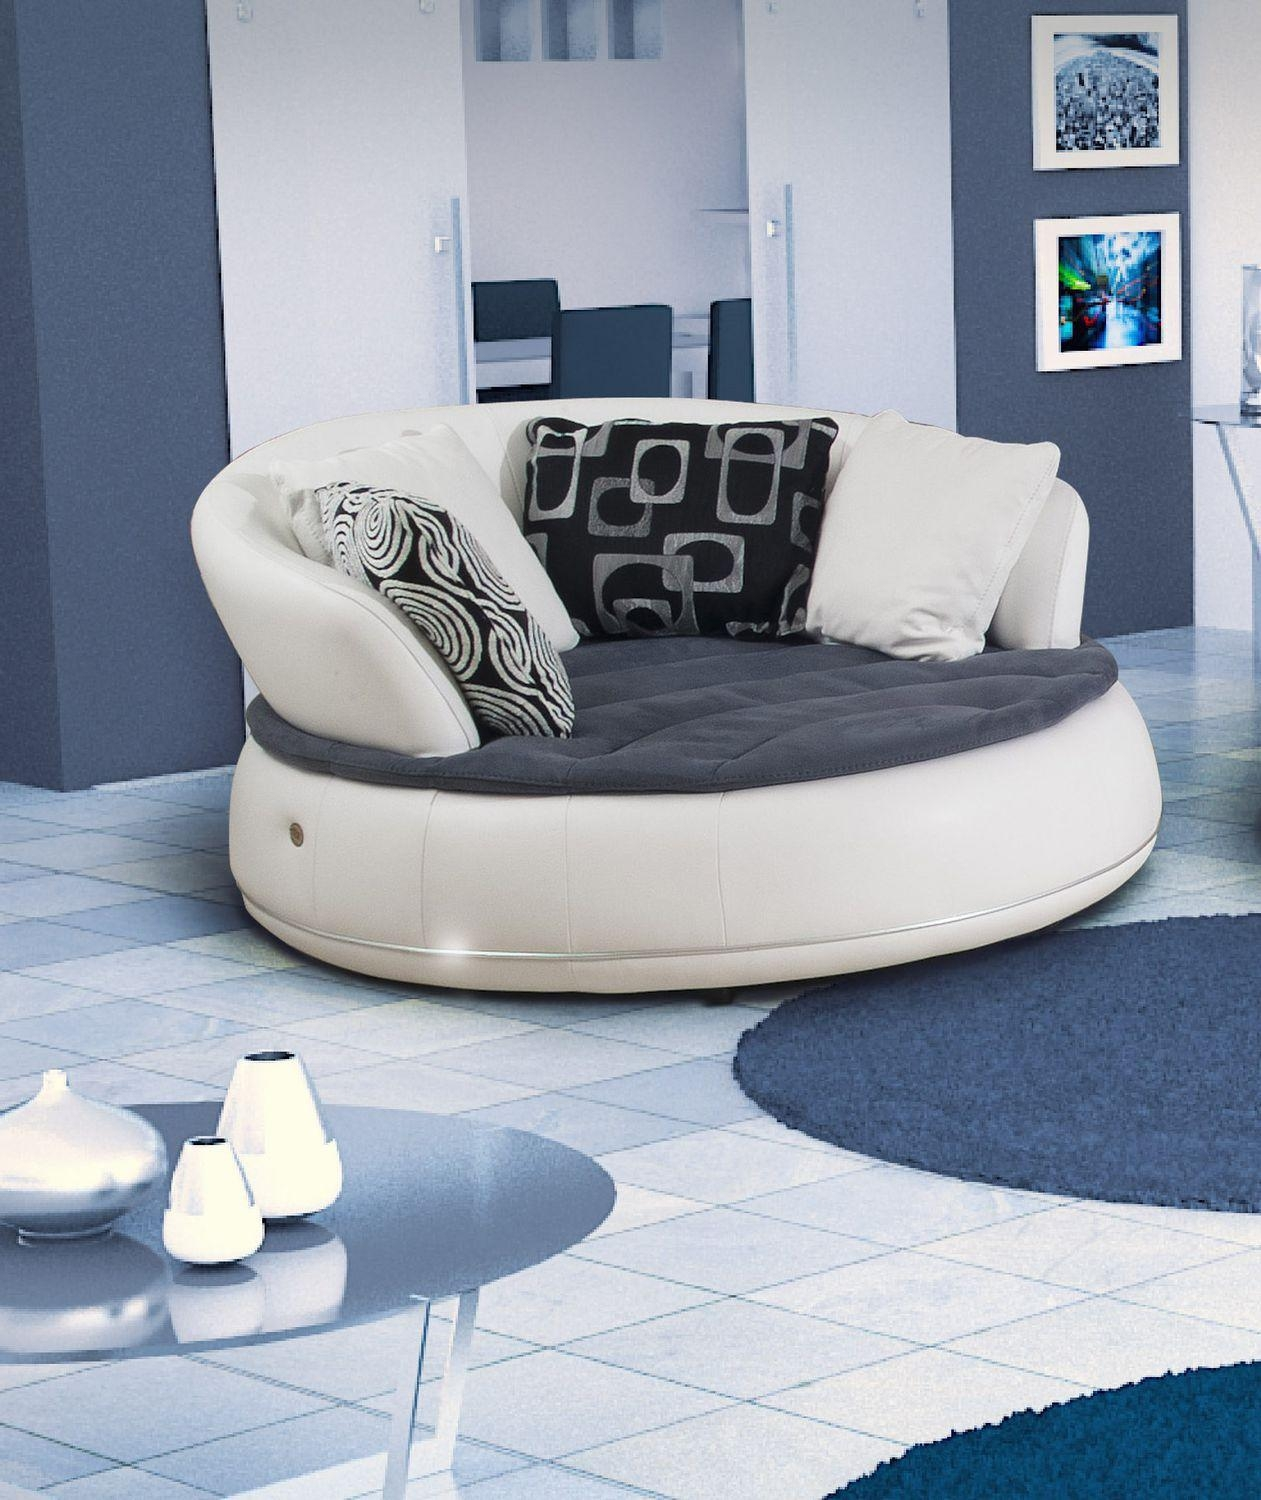 Semicircular Sofa / Round / Contemporary / Leather – Espace – Nieri With Semicircular Sofa (Image 15 of 20)